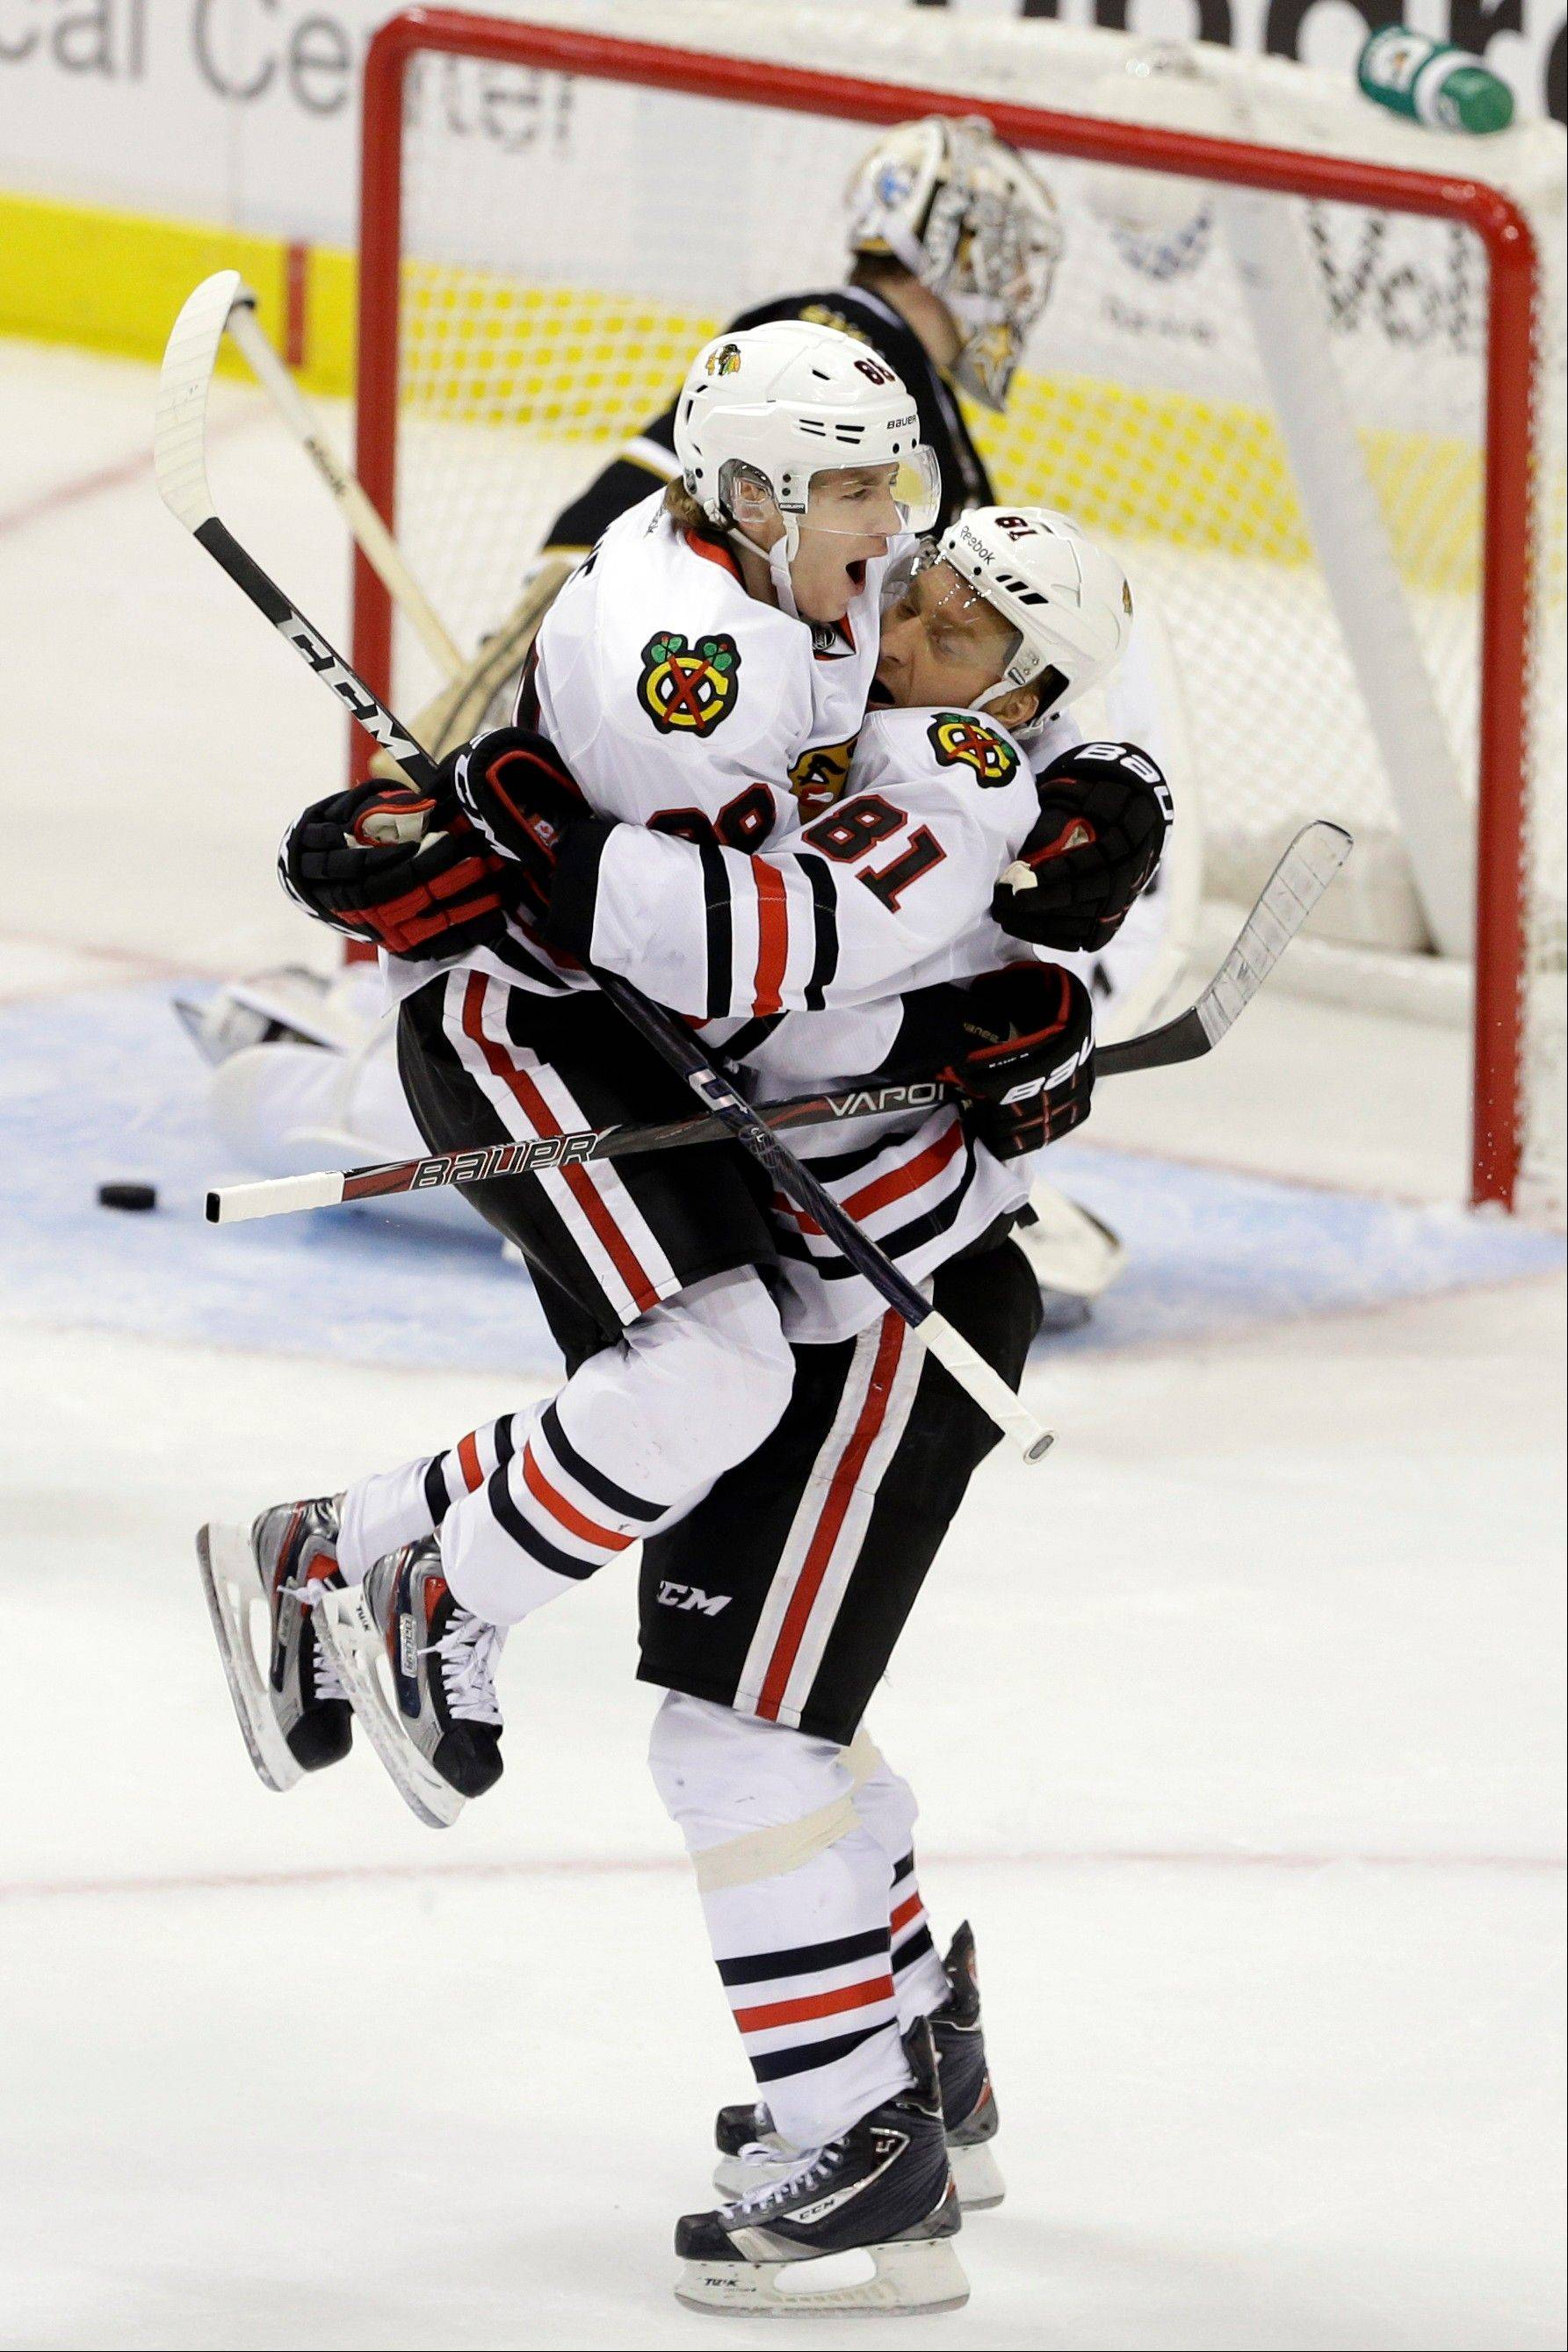 Chicago Blackhawks' Patrick Kane is lifted by Marian Hossa (81) as they celebrate Hossa's overtime goal against Dallas Stars goalie Kari Lehtonen on Thursday night. The Blackhawks won 3-2. (AP Photo/Tony Gutierrez)